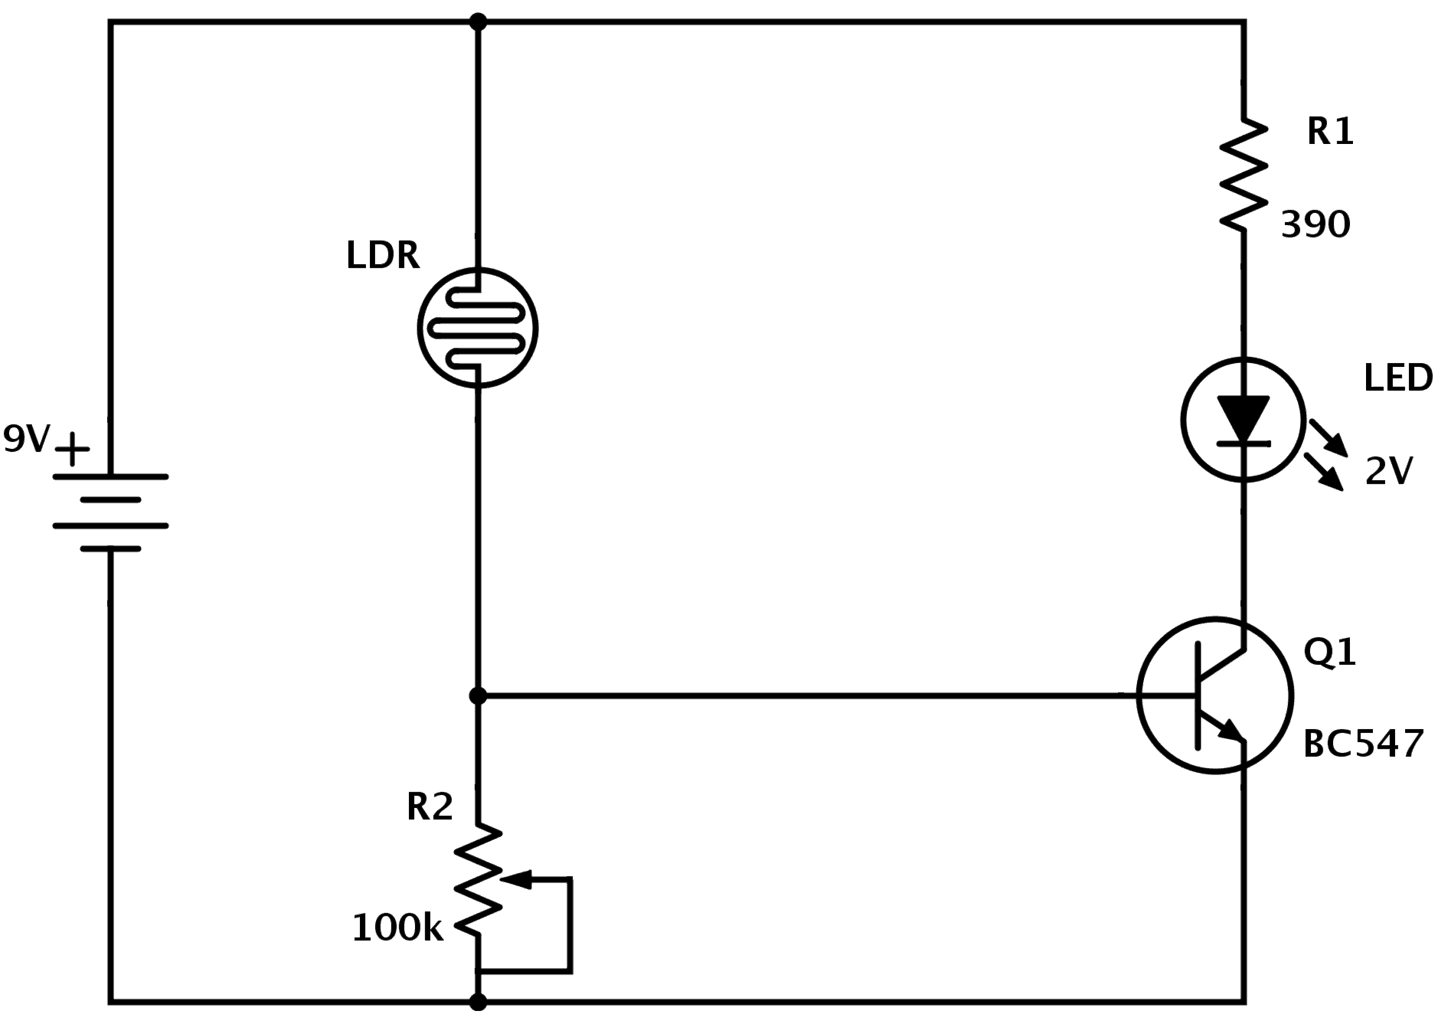 LDR circuit improved circuit diagram how to read and understand any schematic simple circuit diagram at edmiracle.co